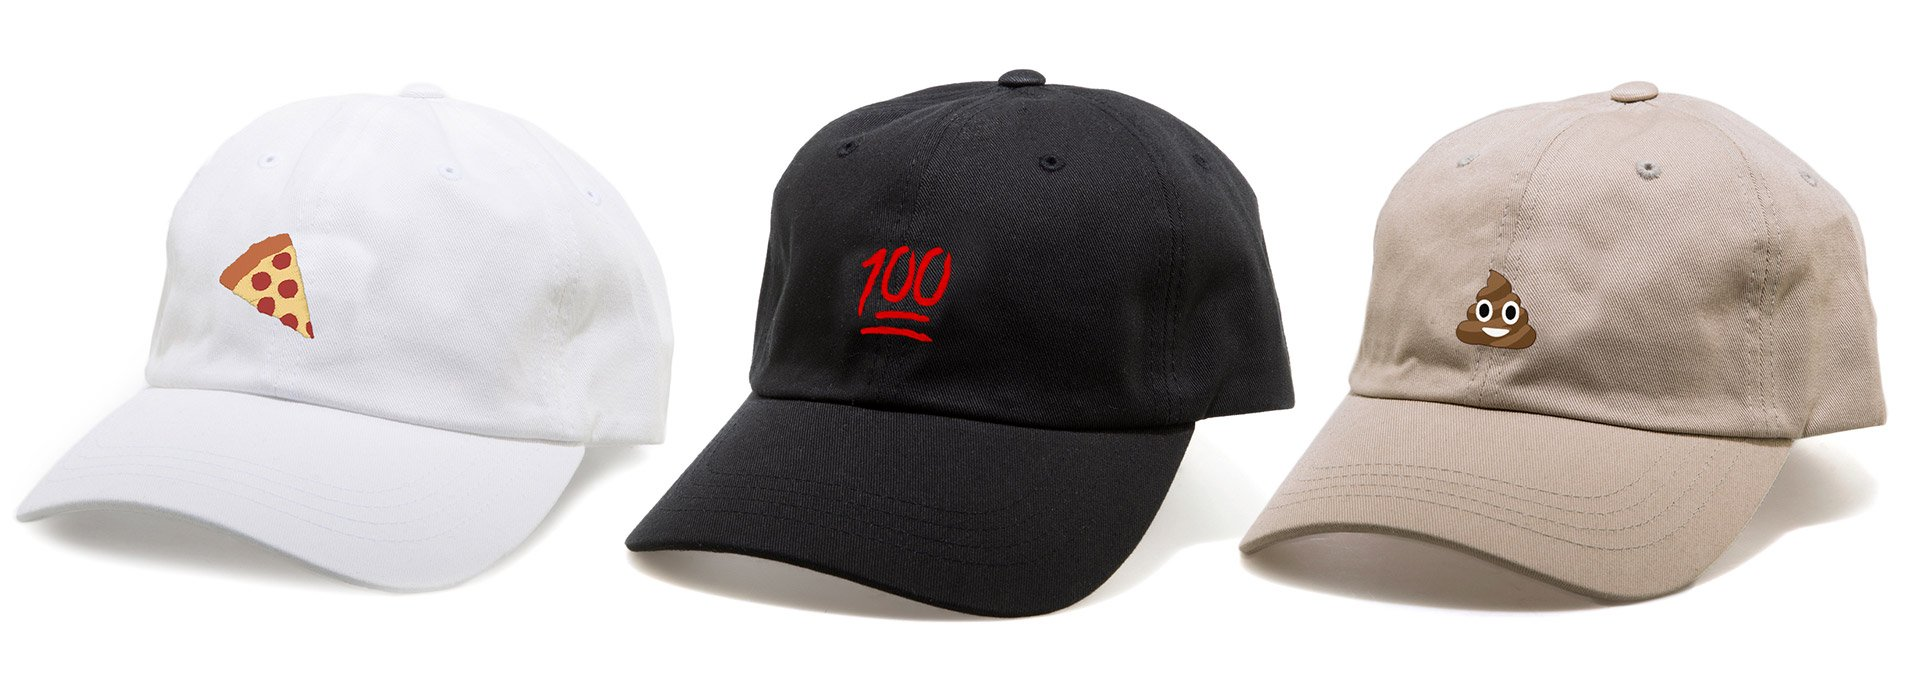 Awesome Dad Hats Collection